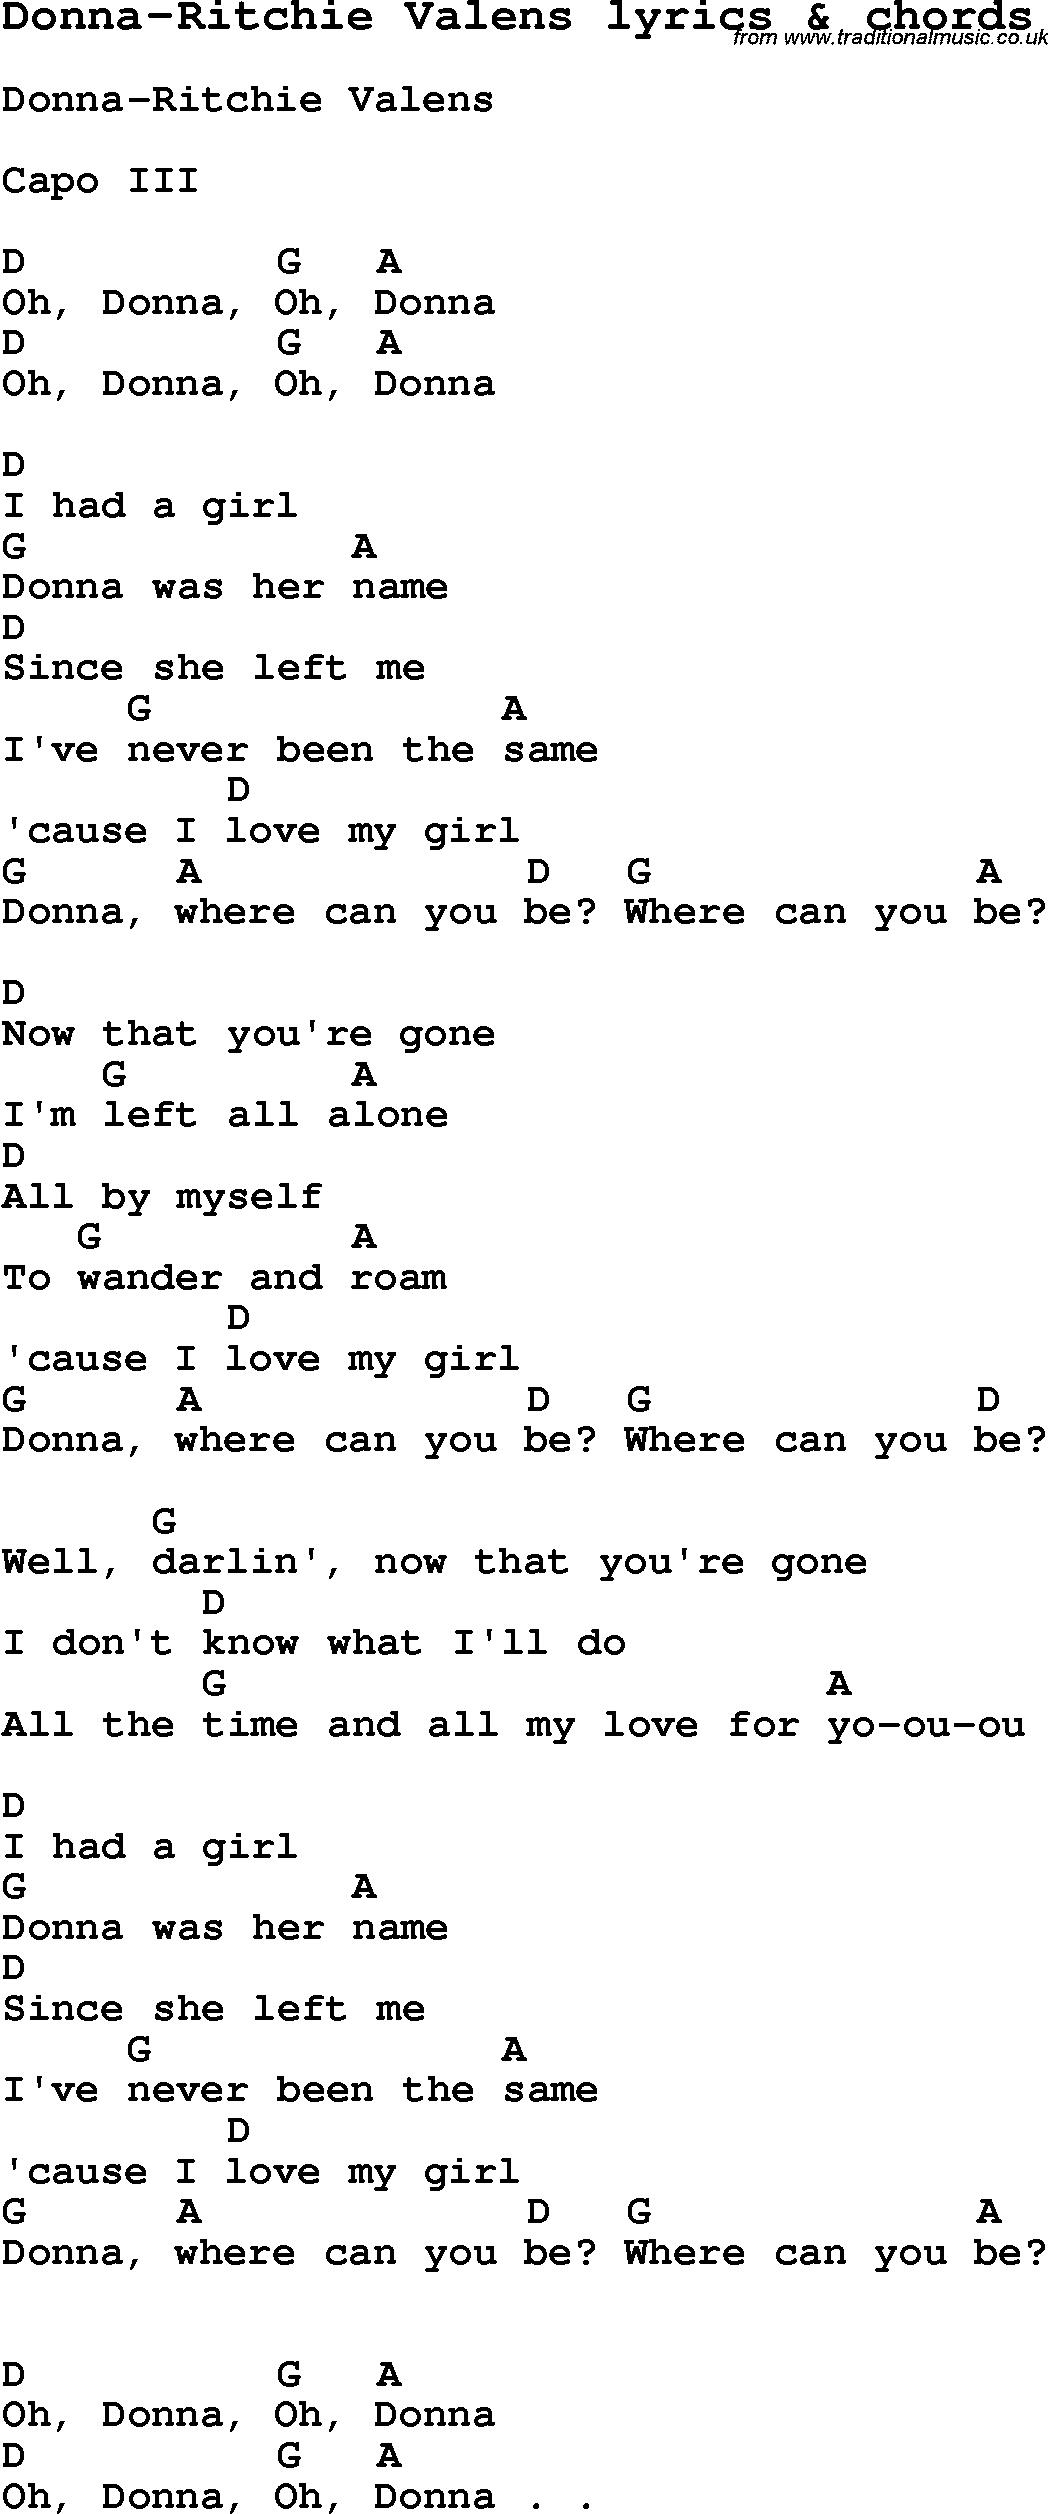 Love Song Lyrics Fordonna Ritchie Valens With Chords